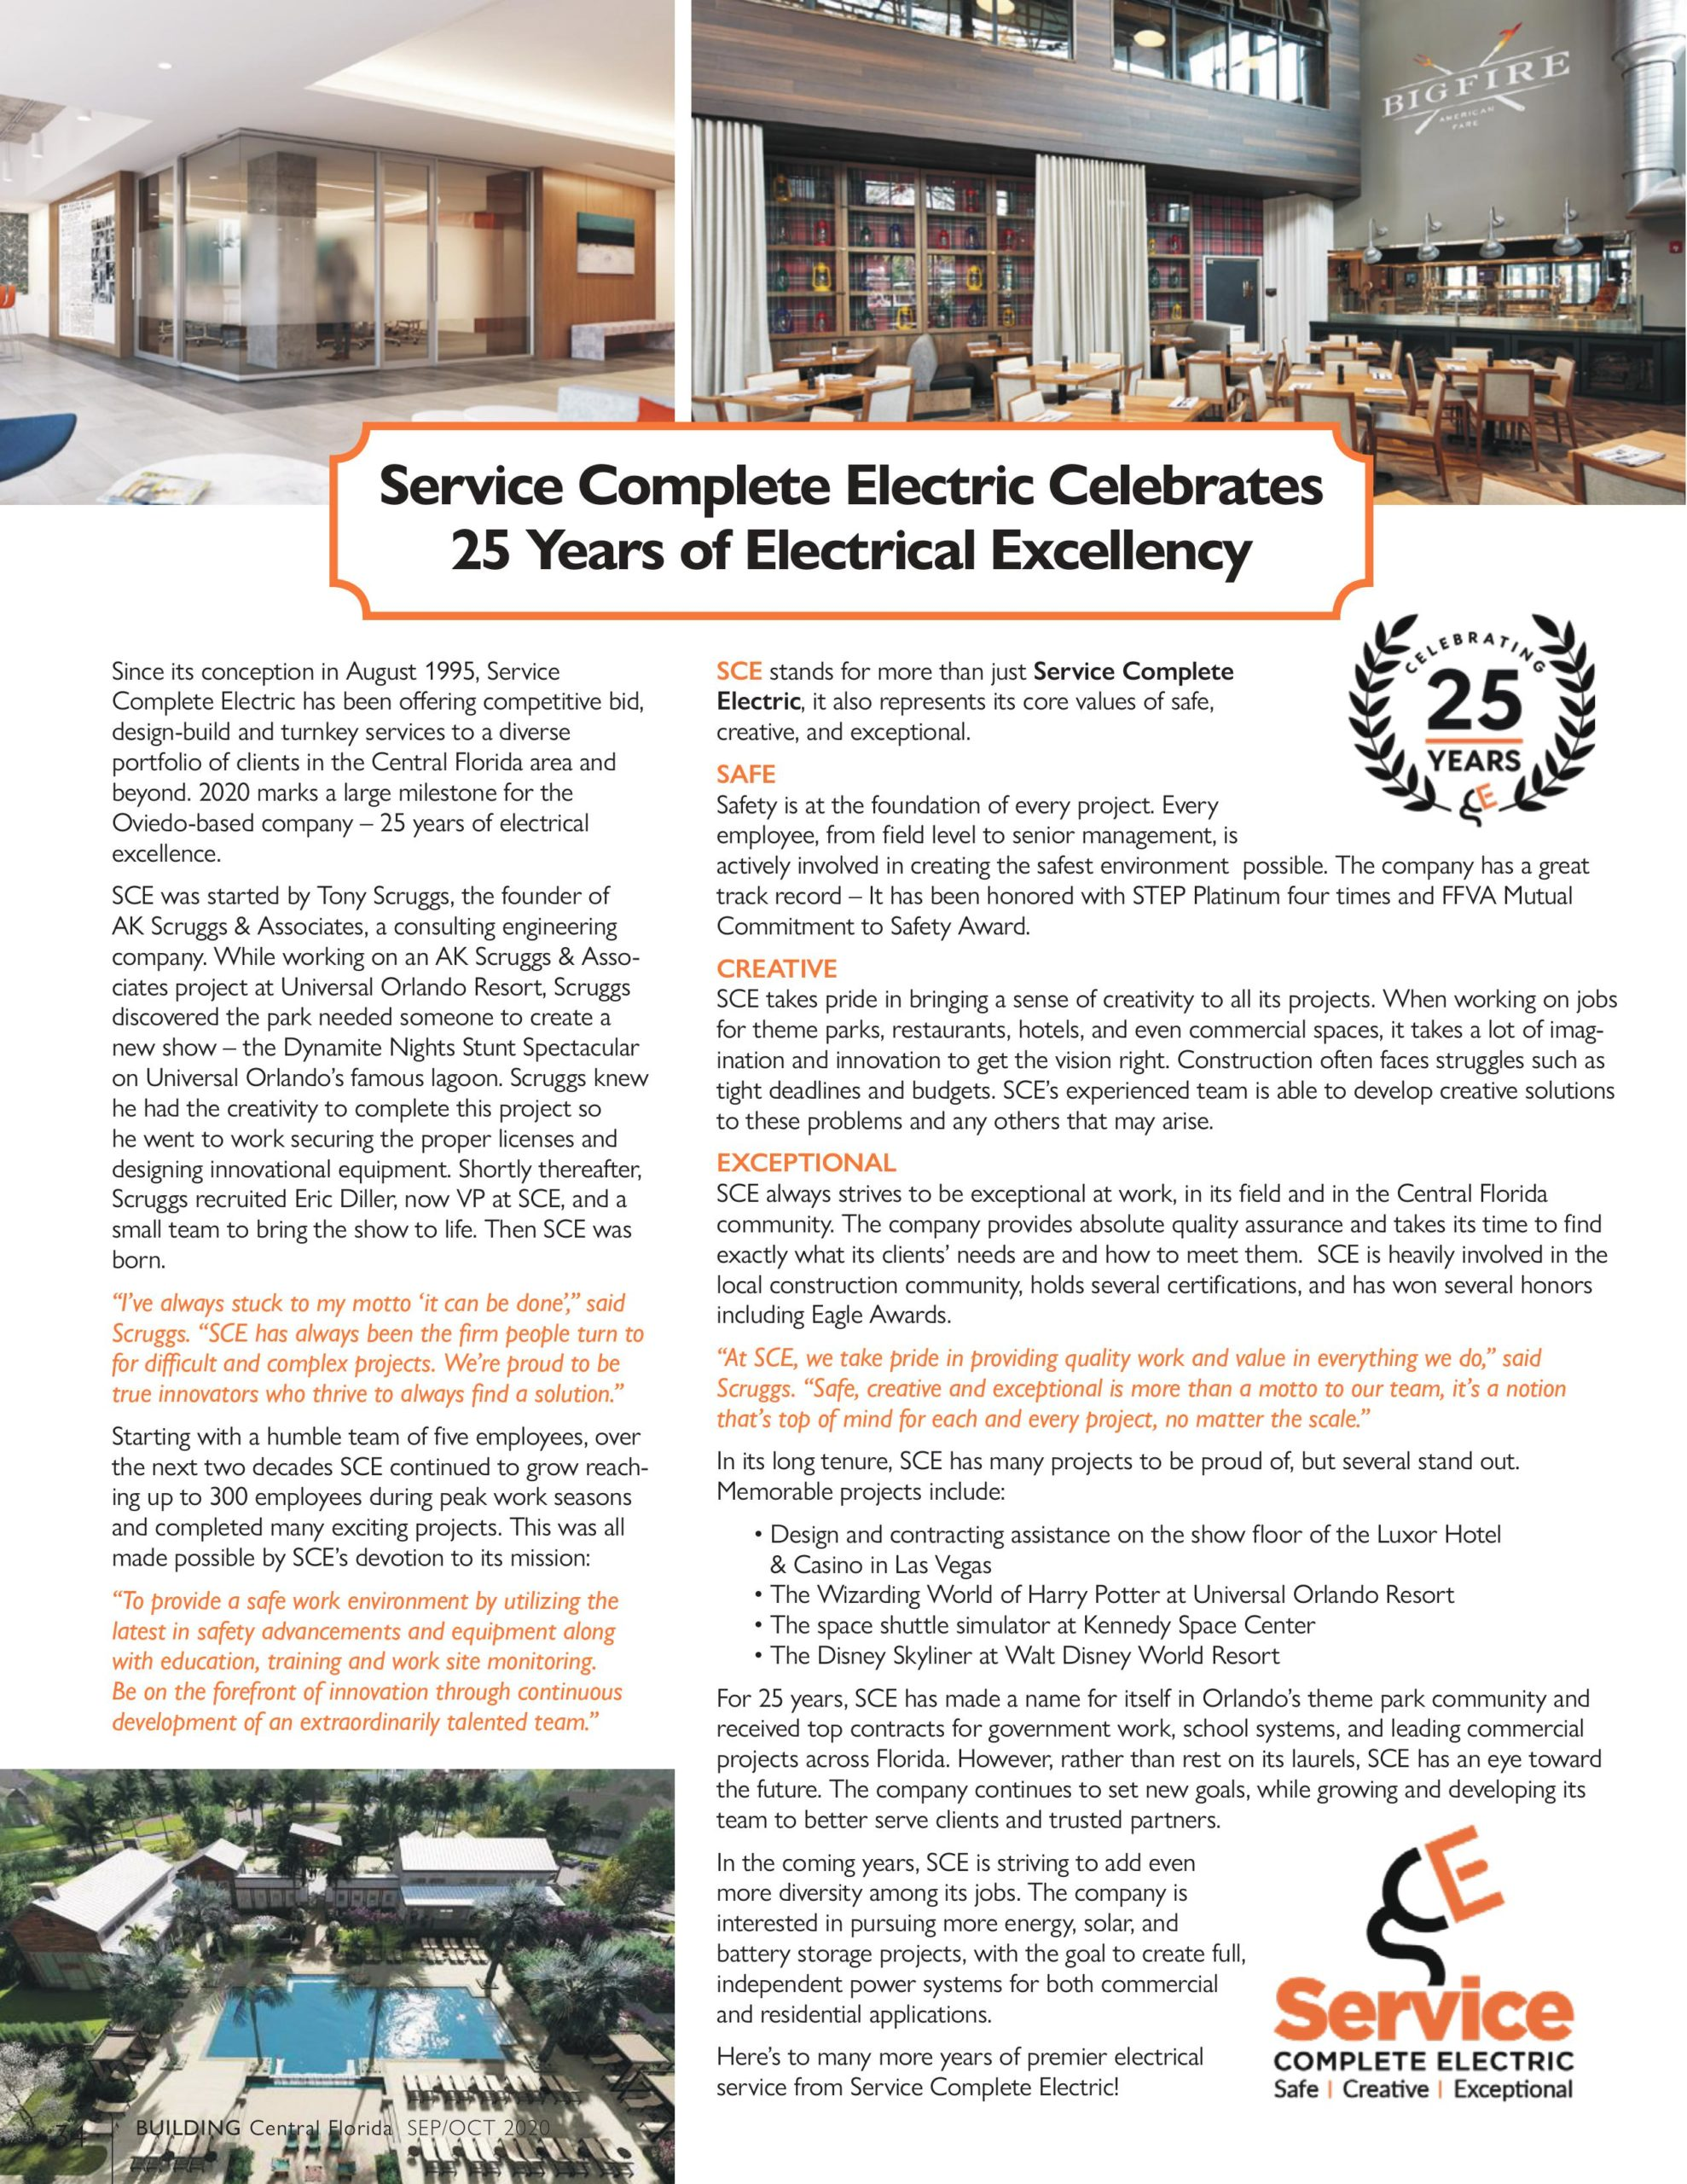 Service Complete Electric Building Central Florida article